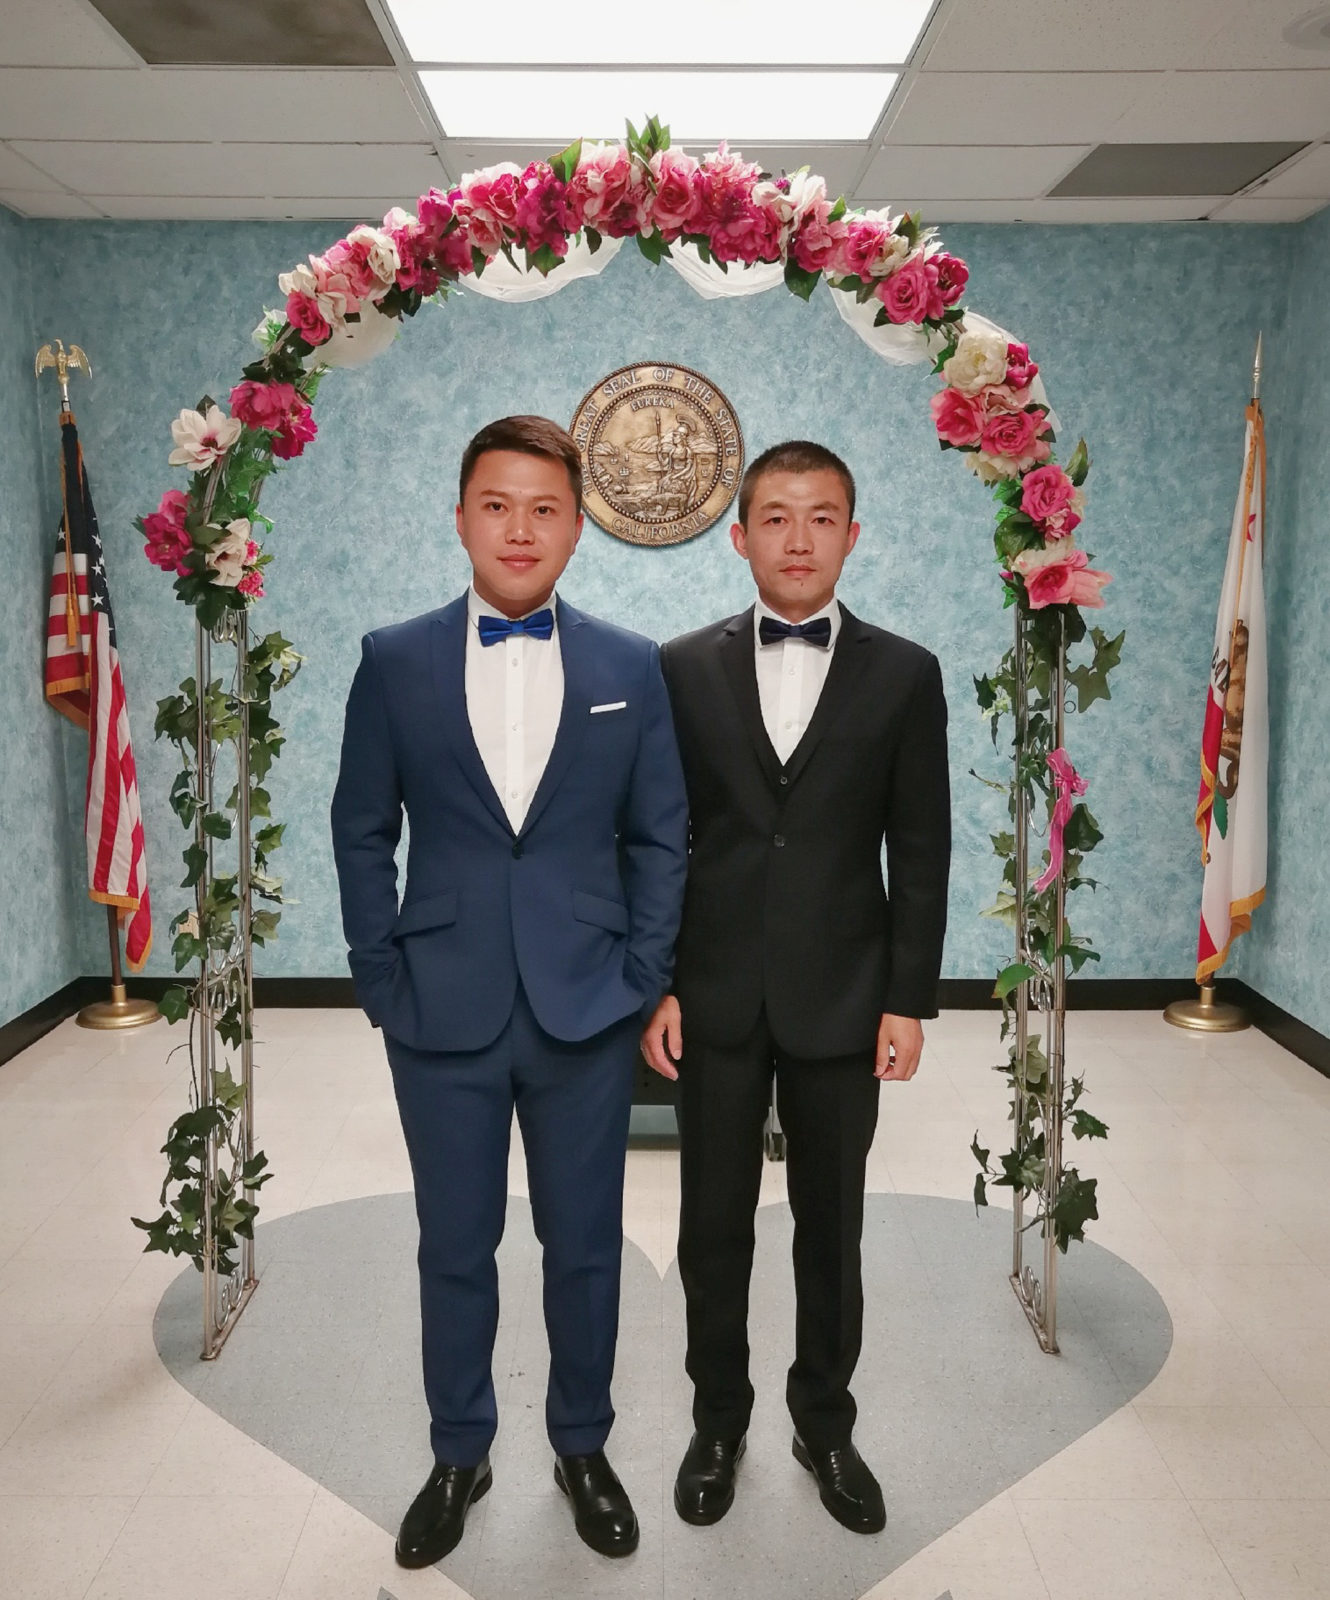 Two men in suits stand under an arch made of flowers. It is their wedding day.